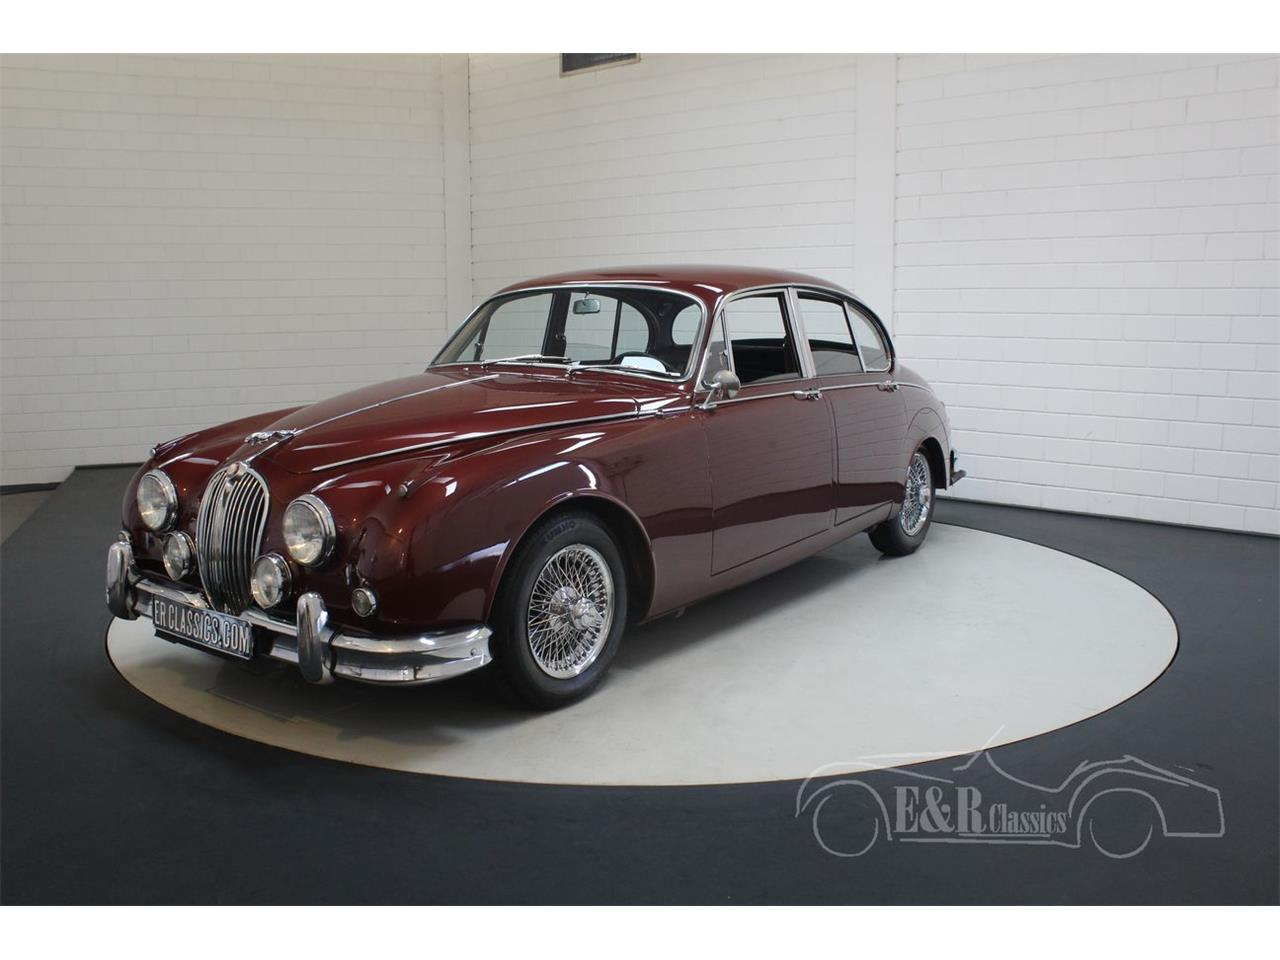 Large Picture of Classic '60 Jaguar Mark II located in Waalwijk Noord-Brabant - $48,200.00 Offered by E & R Classics - QJZJ